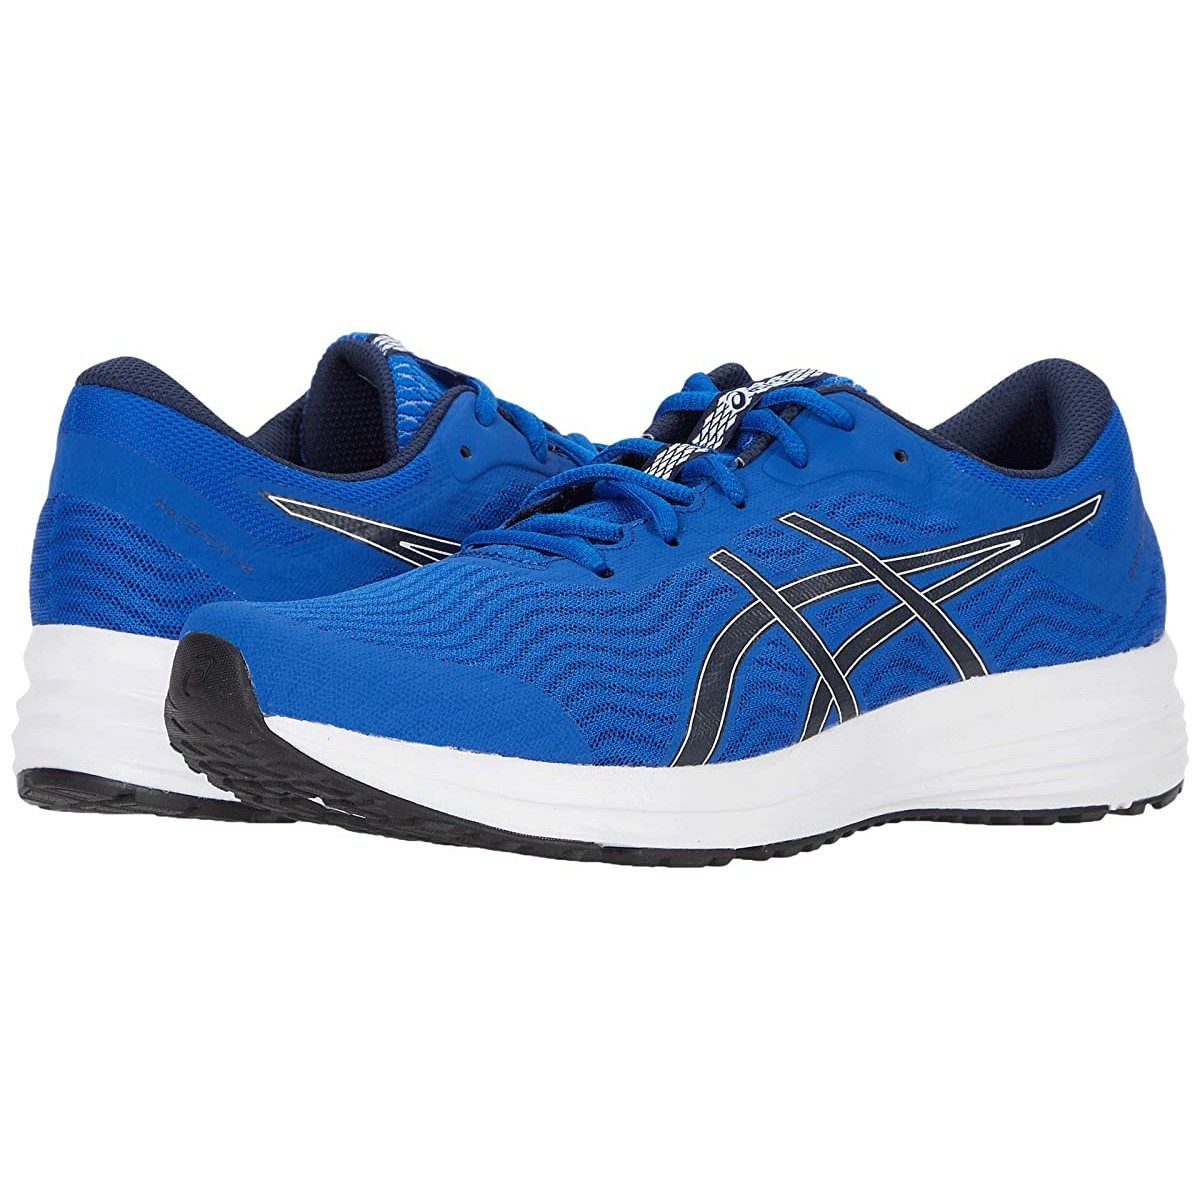 ASICS / Кроссовки Asics Patriot 12 Asics Blue/Midnight, 46.5 (295 мм)